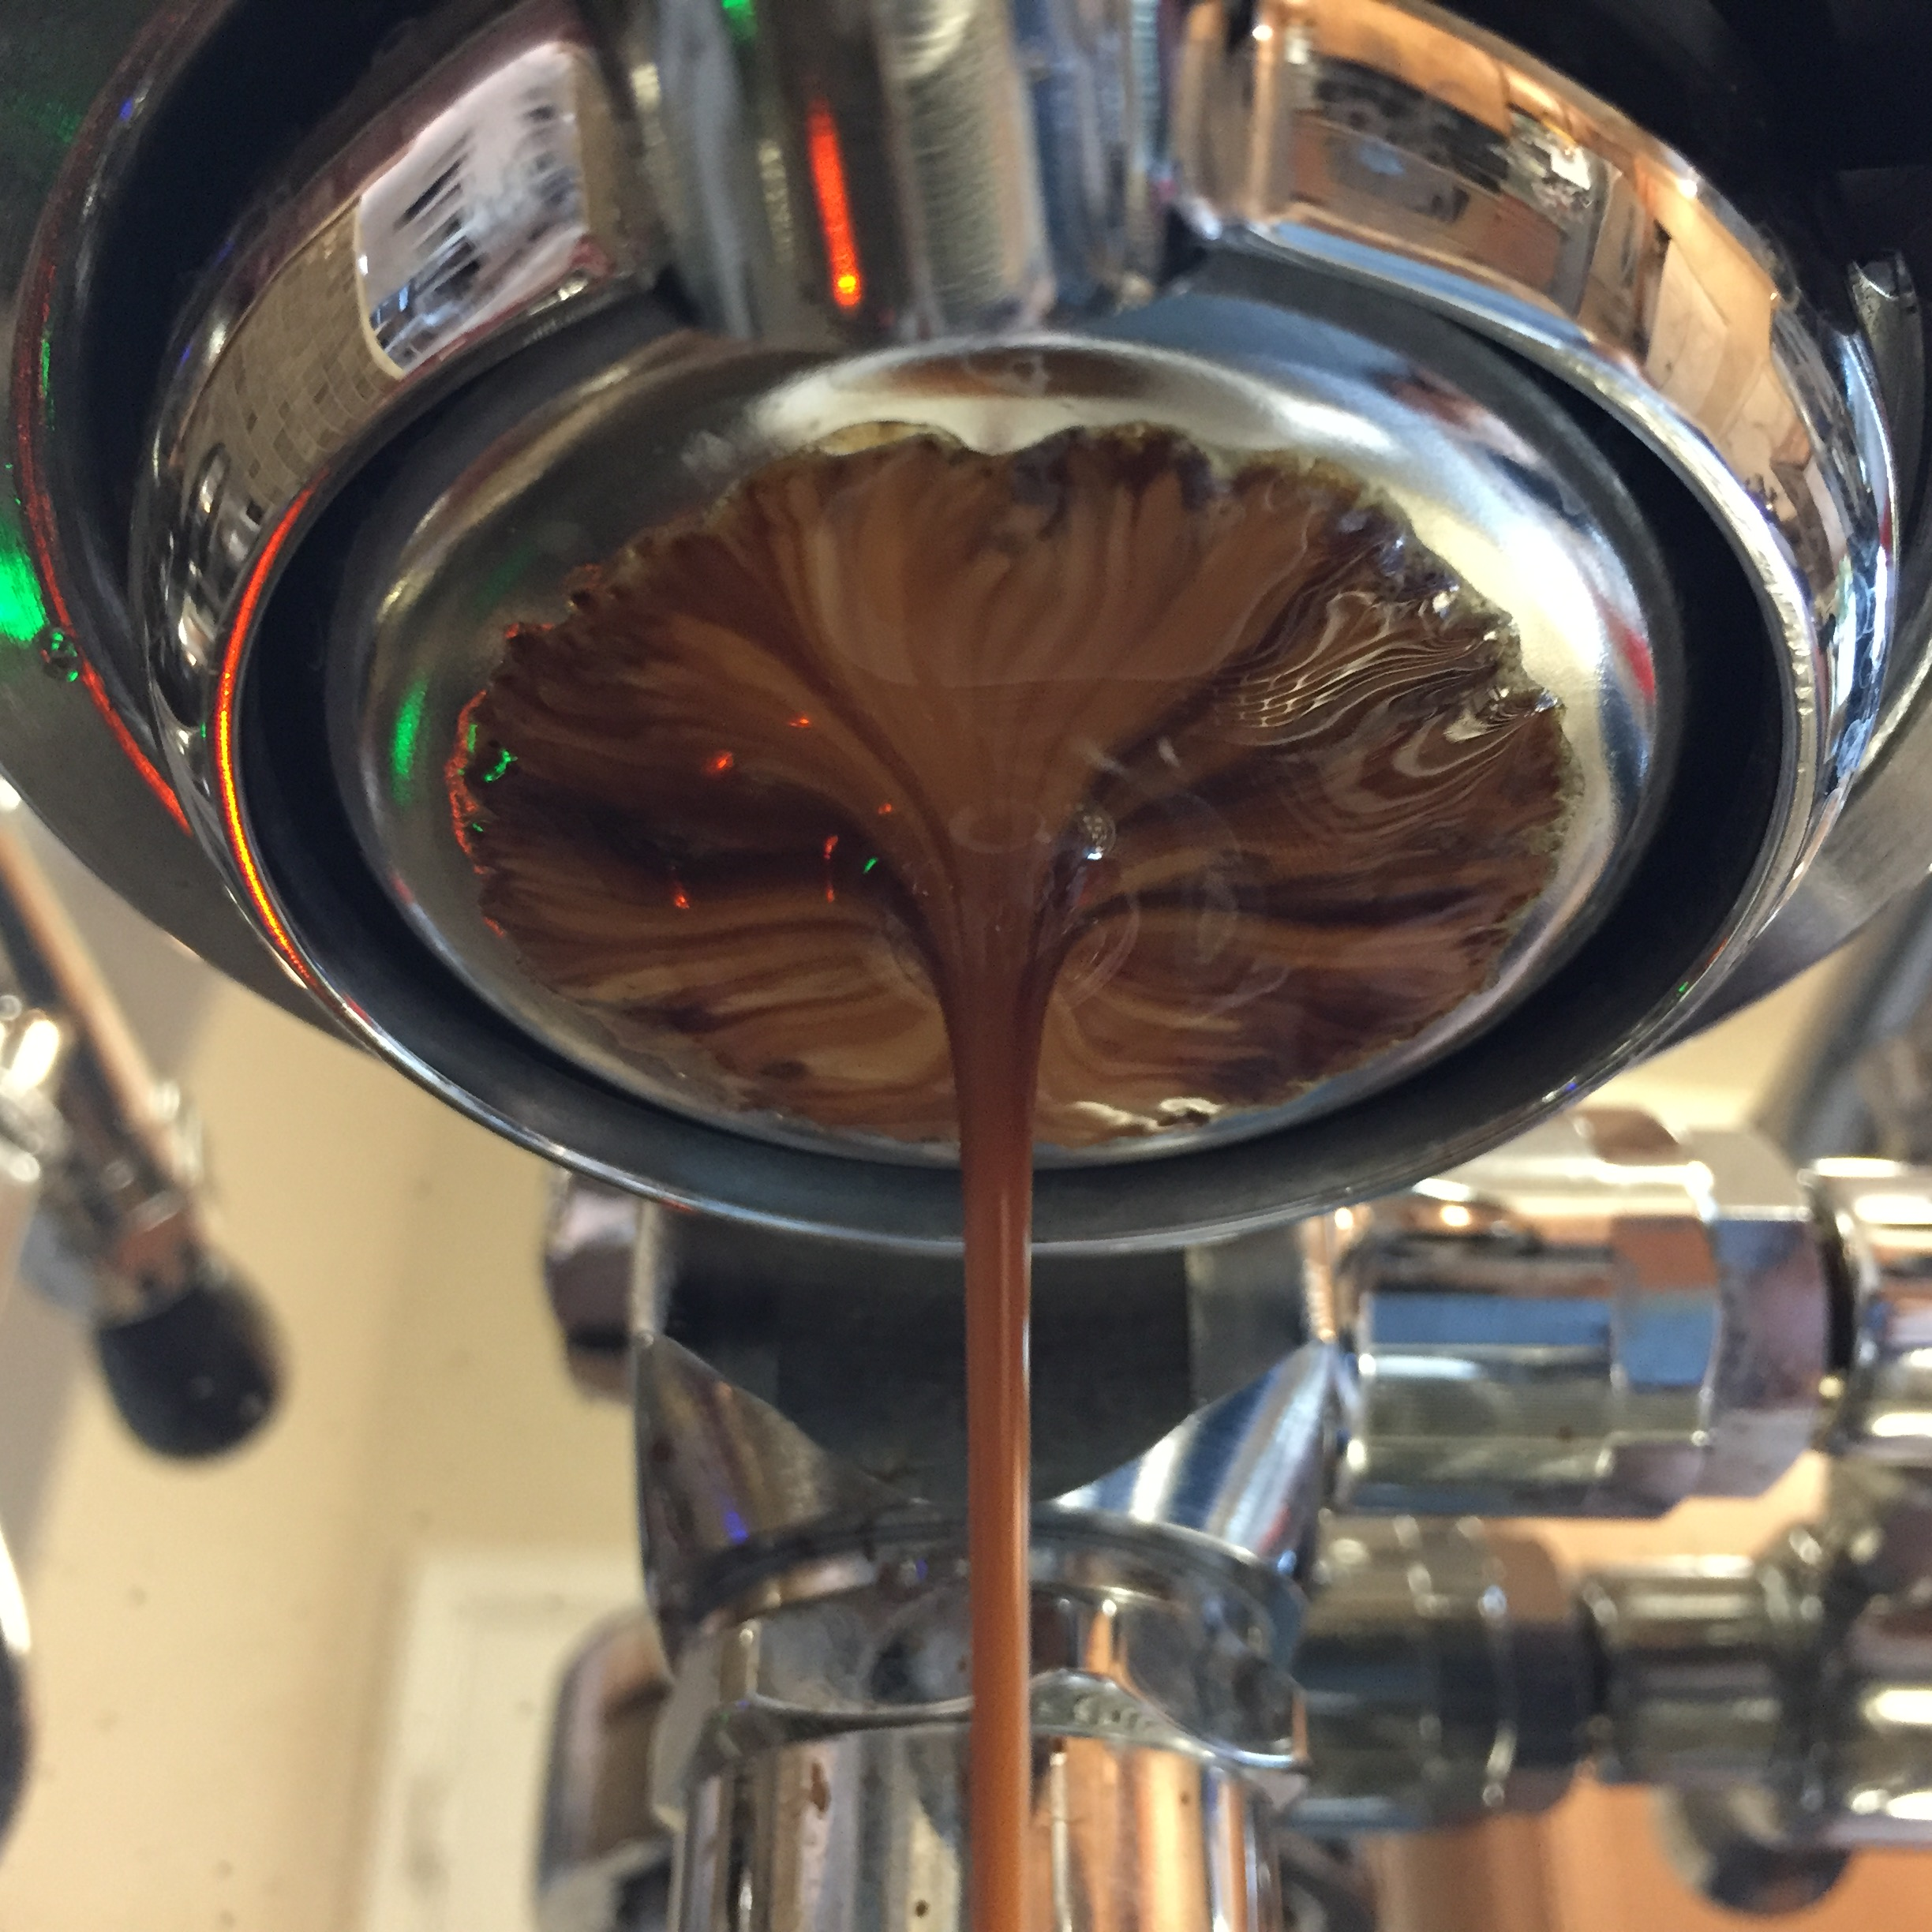 Snappy and sweet shots with a milk chocolate finish through the IMS Precision double basket.